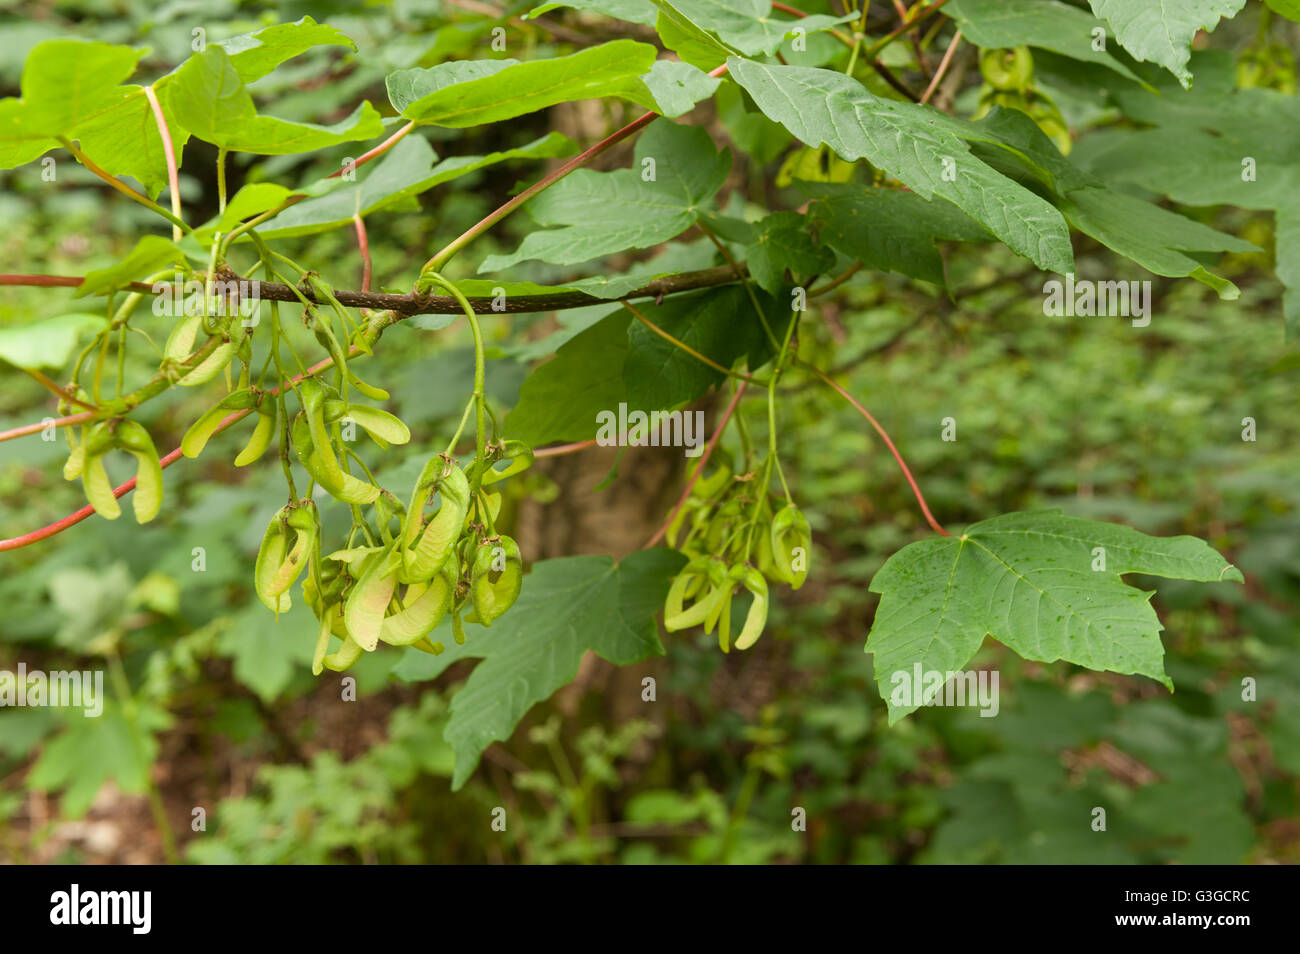 New sycamore acer tree seeds fruit developing in grape like clumps on branches ready for wind dispersal at end of season Stock Photo